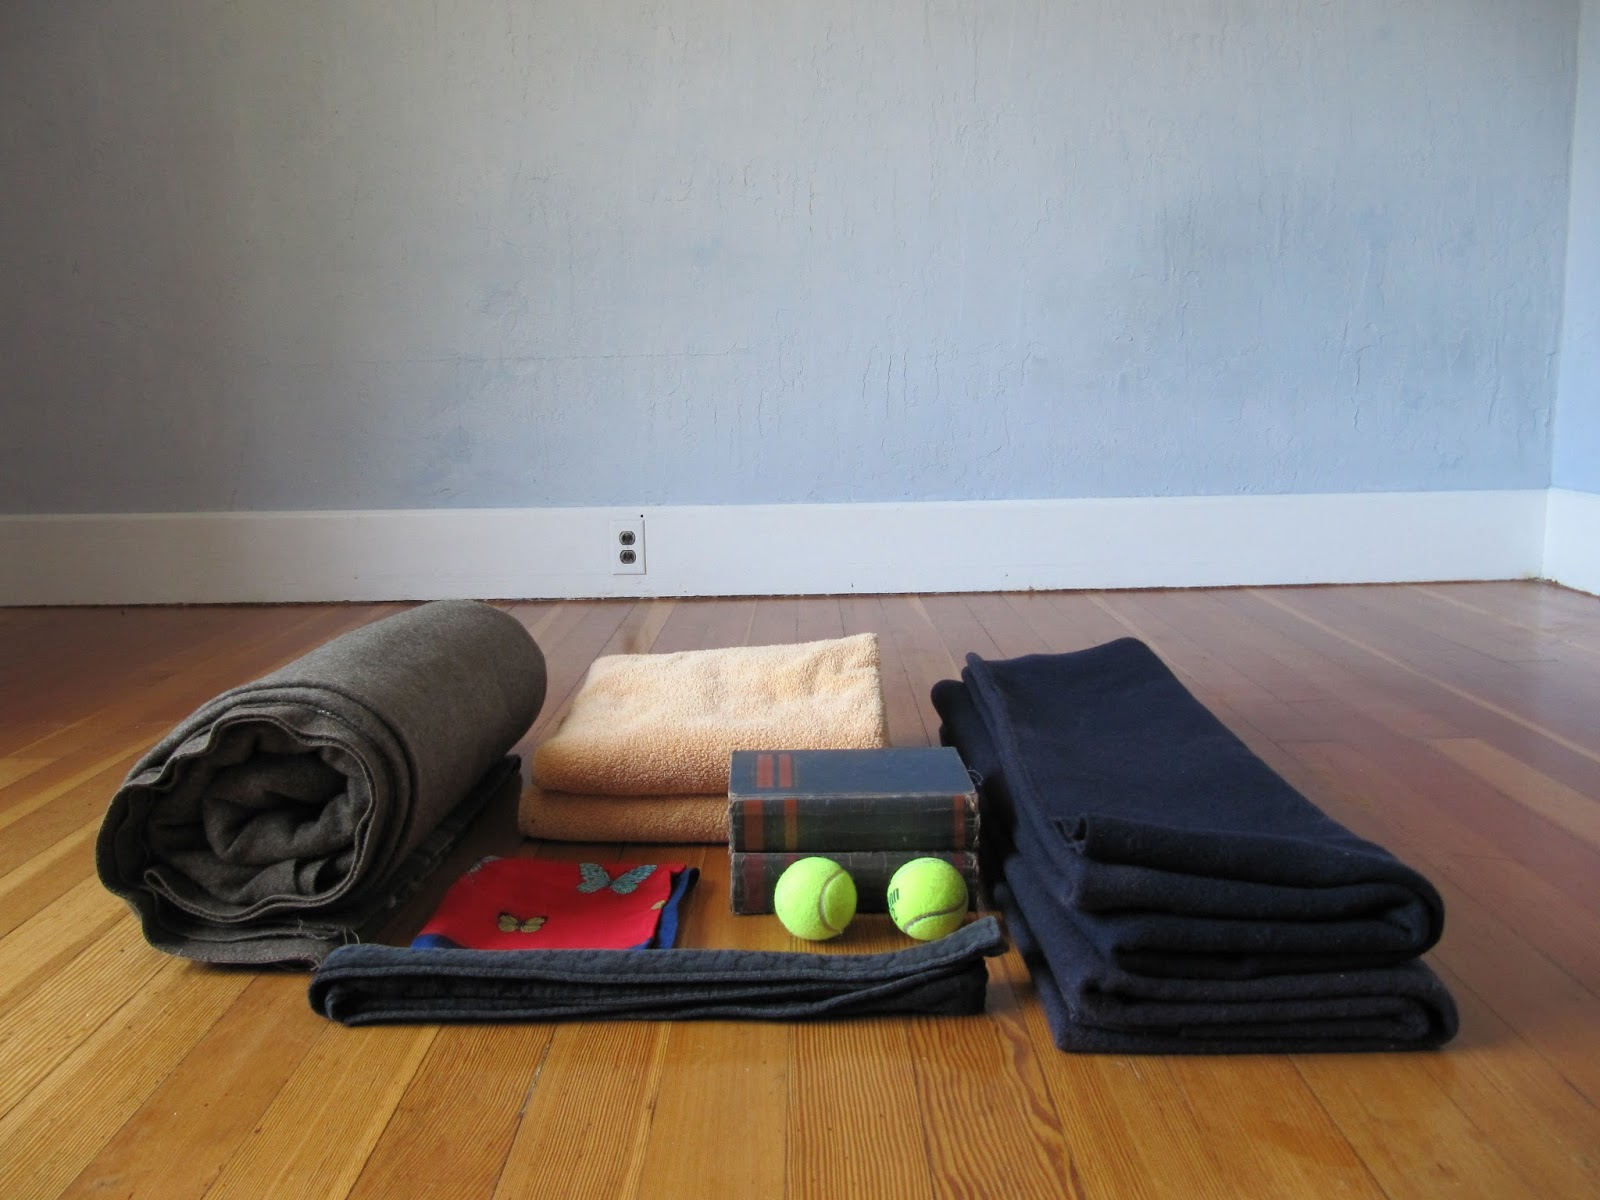 props for yoga iii inverted asanas a guide to iyengar yoga practice with props volume 3